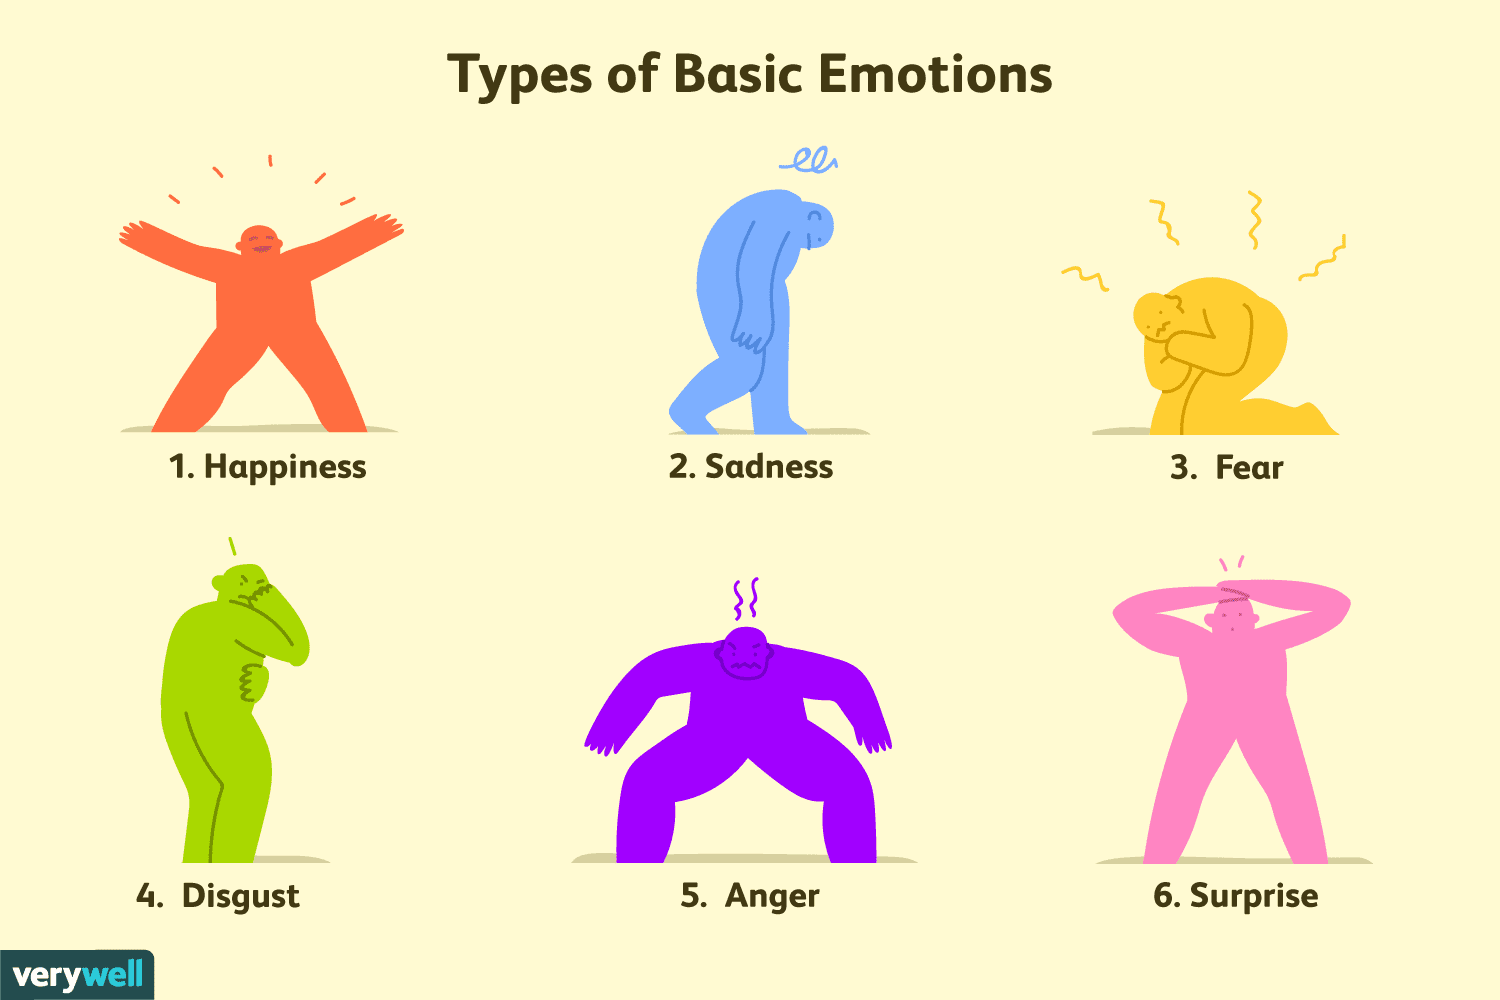 The 6 Types of Basic Emotions